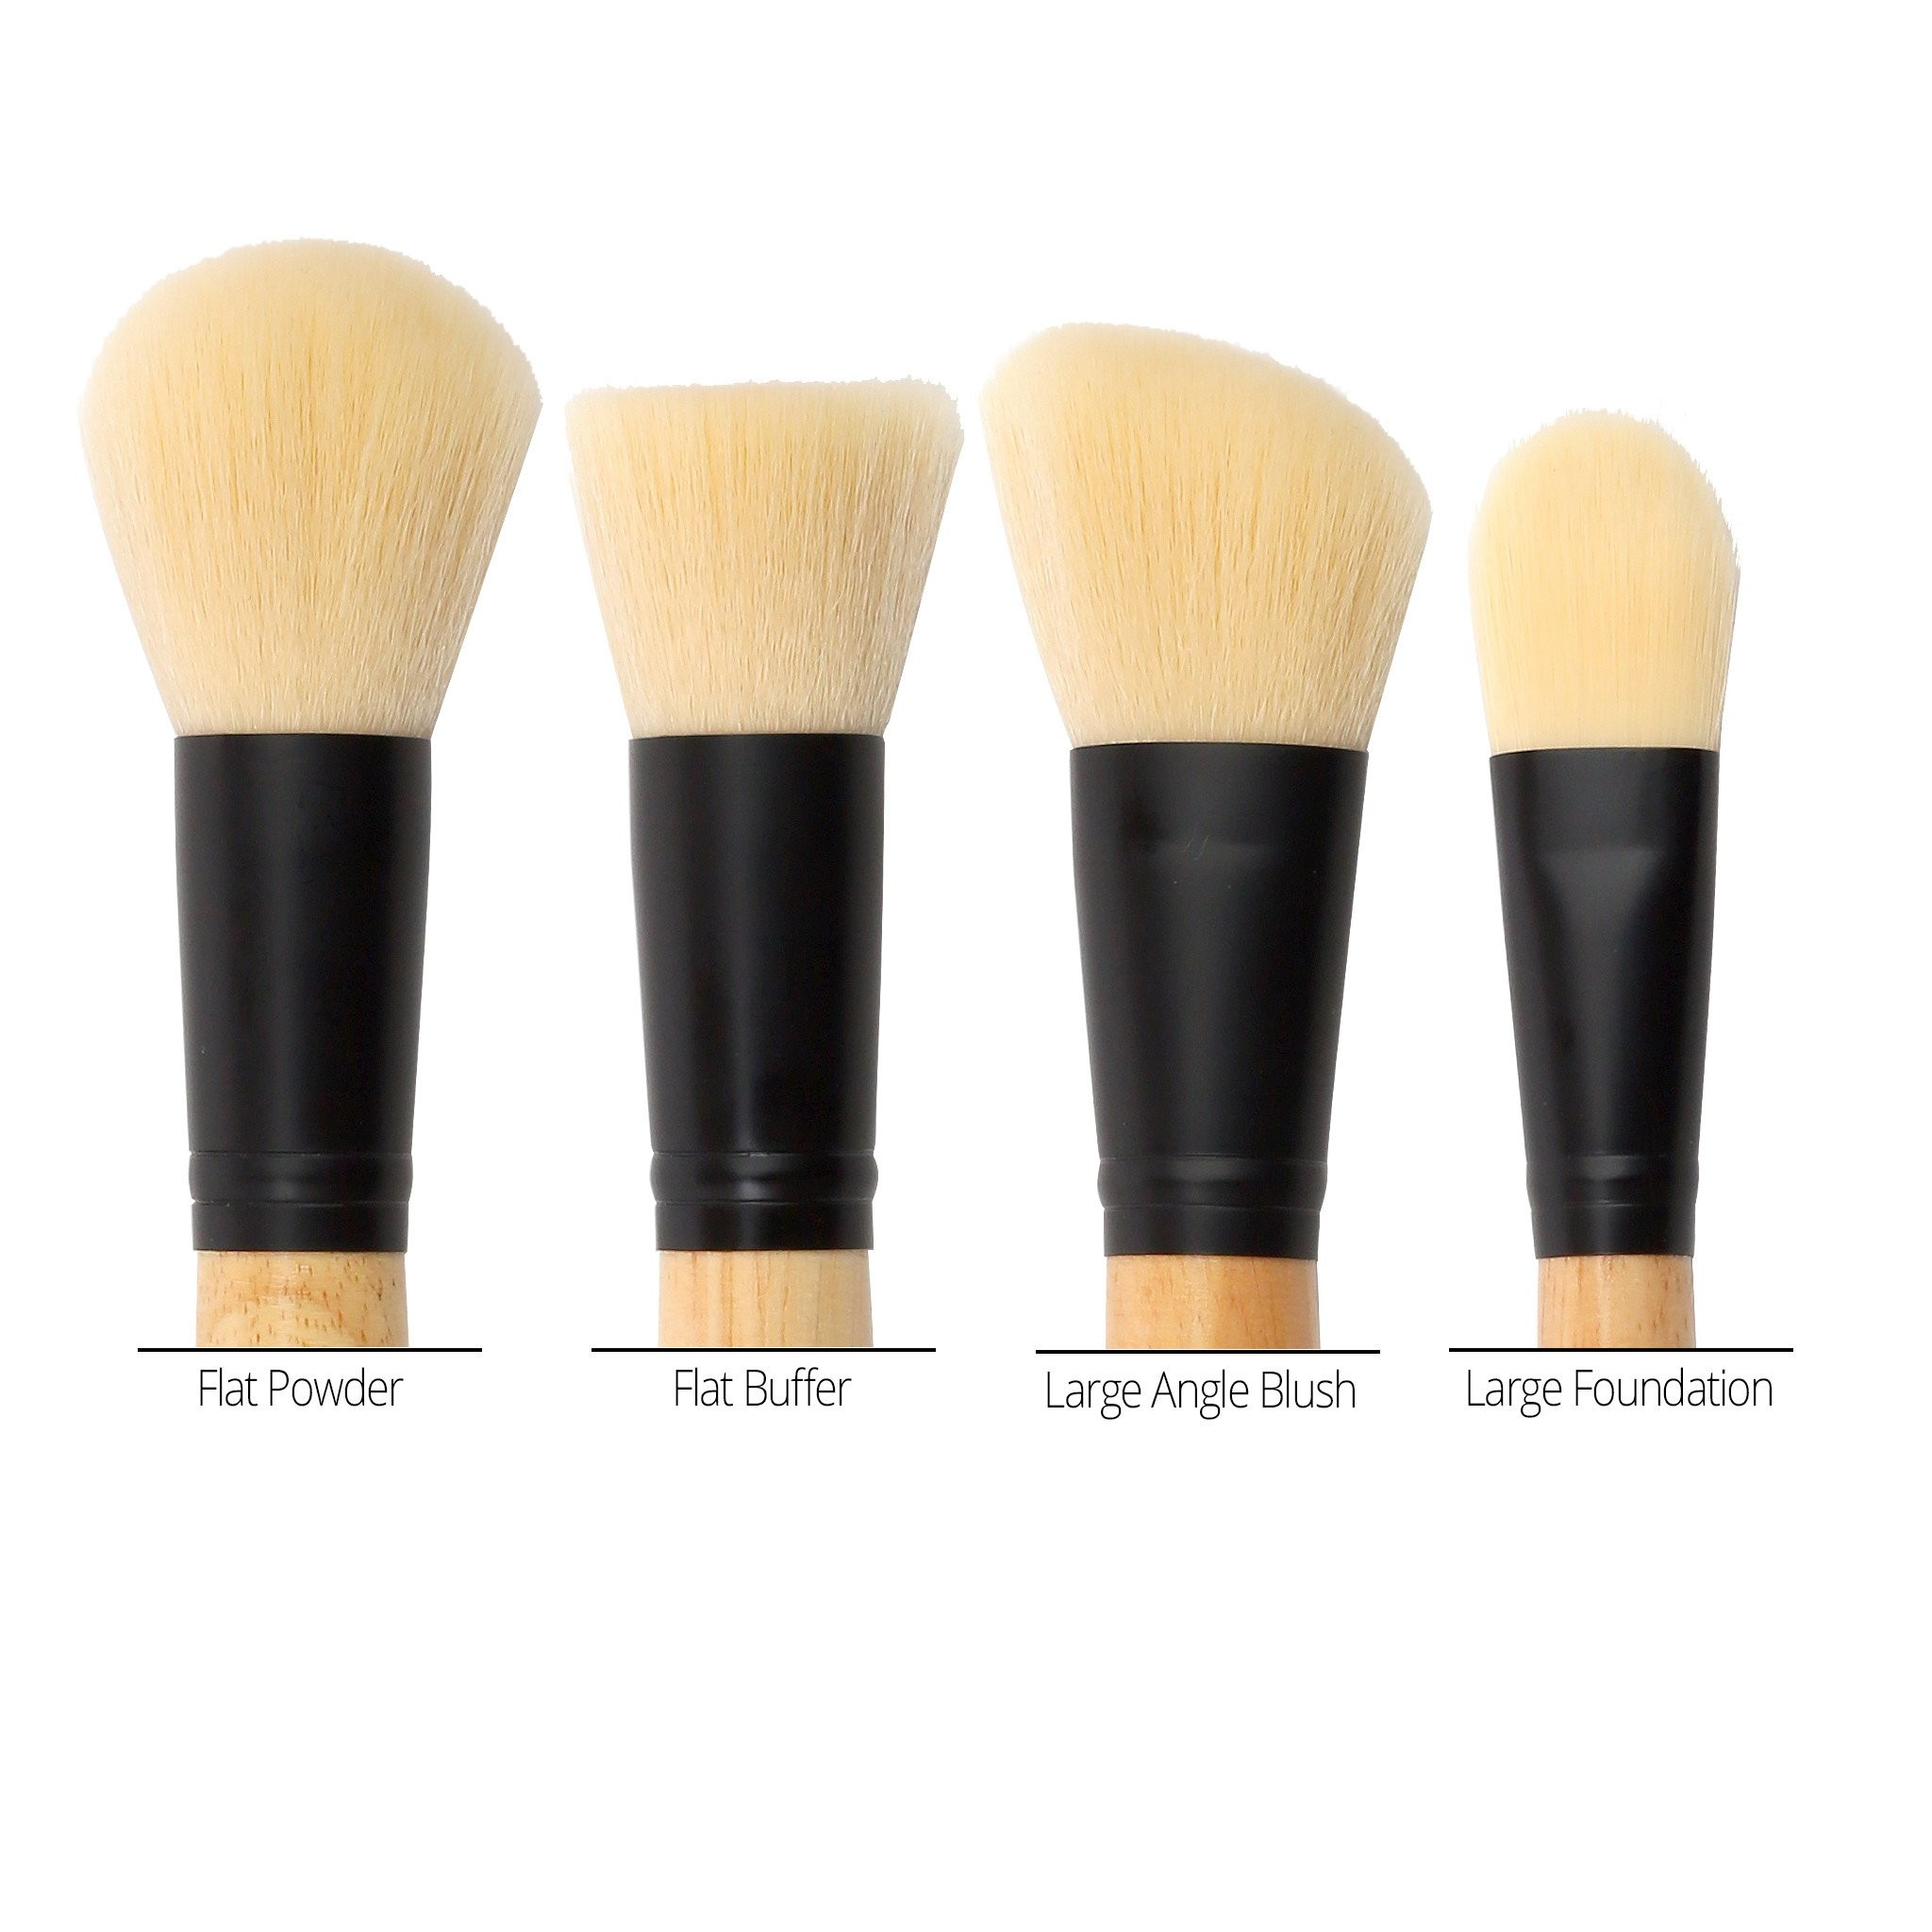 4-Teiliges Pinsel-Set - 4 Face Brush Set